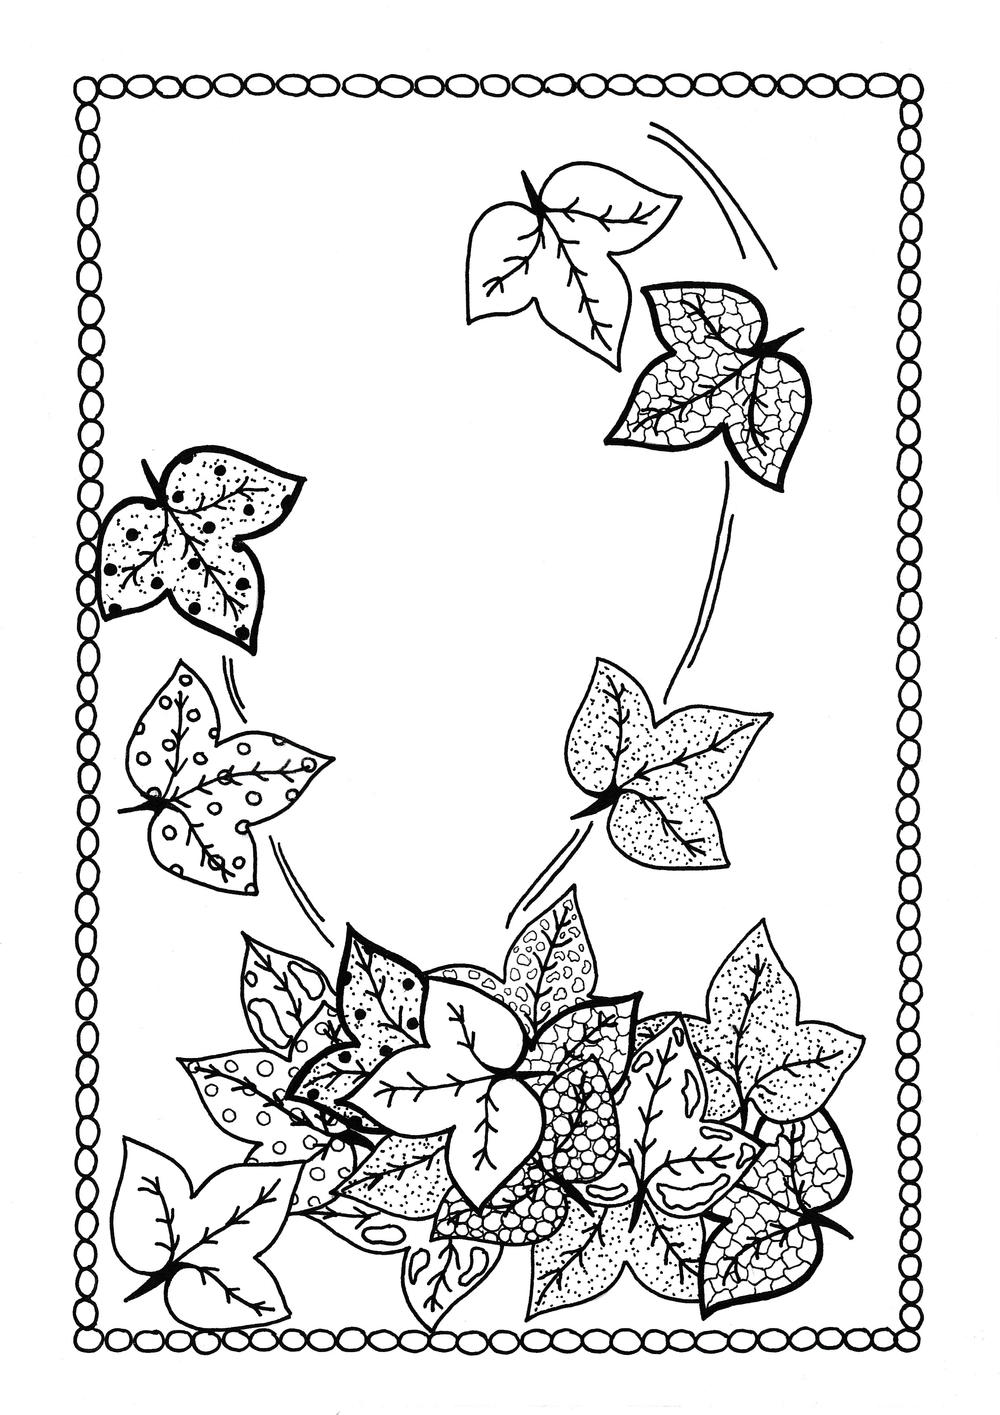 fall color sheet free printable fall coloring pages for kids best sheet fall color 1 1